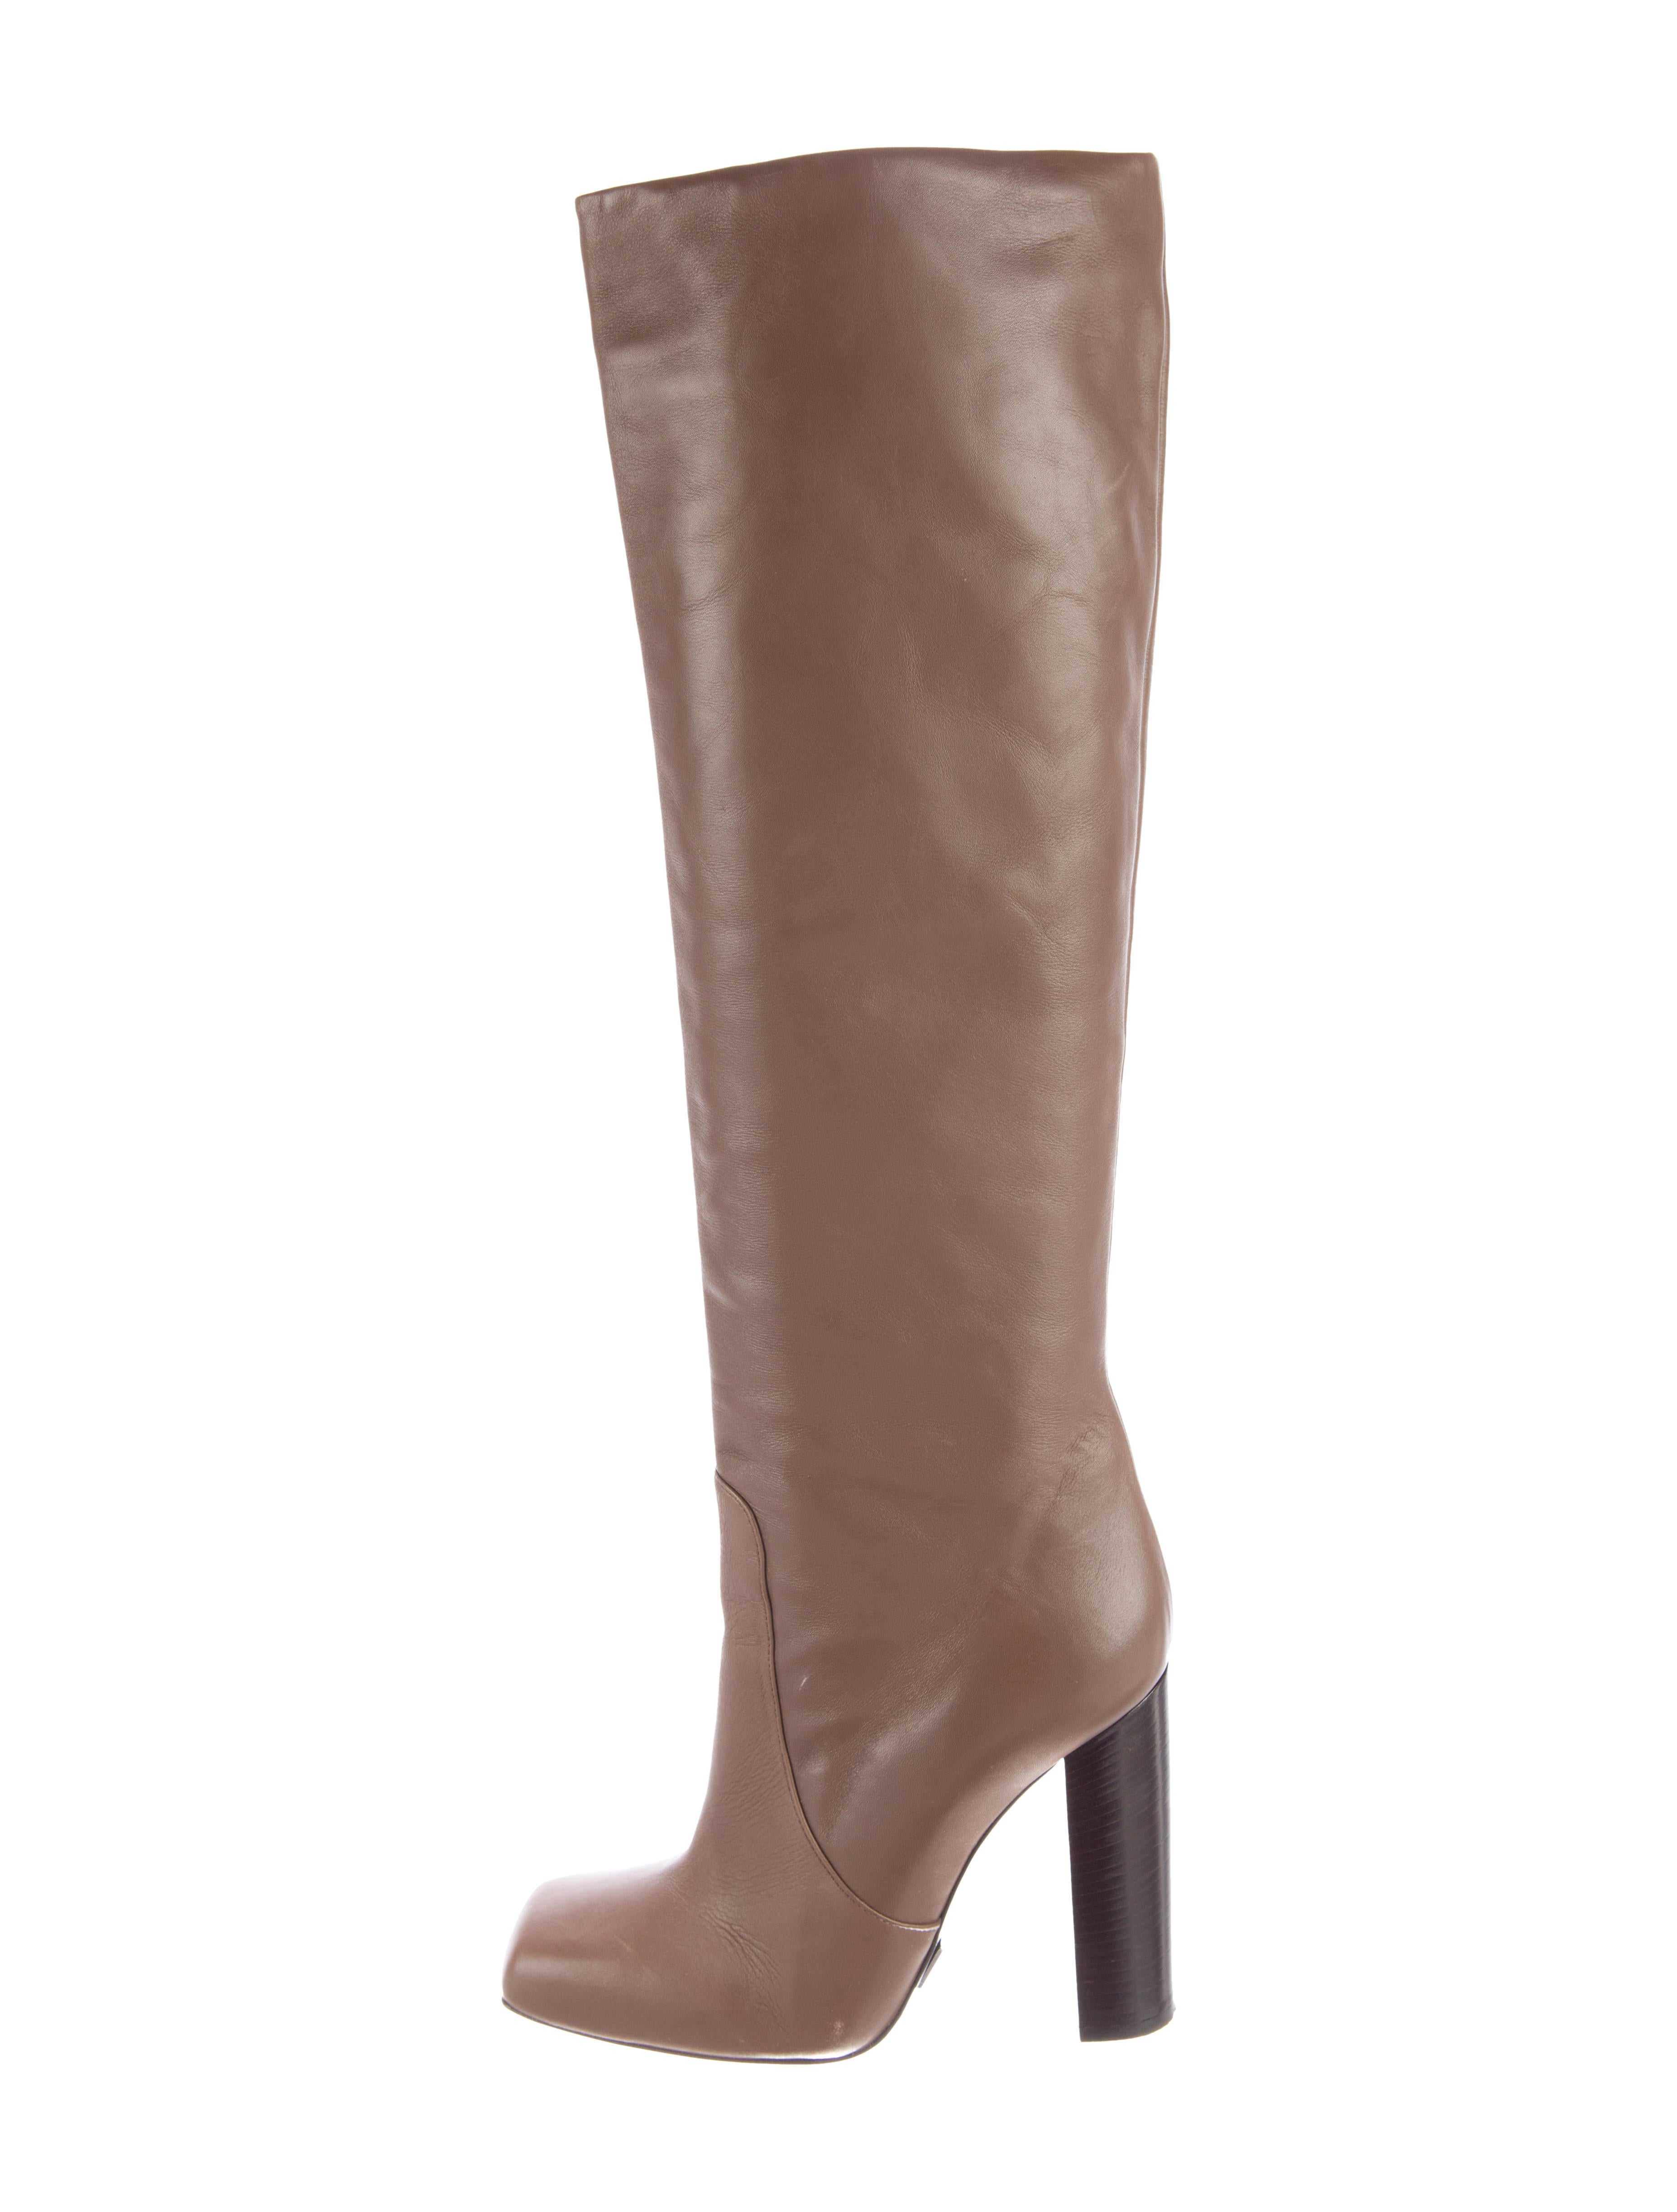 michael kors leather square toe boots shoes mic41887